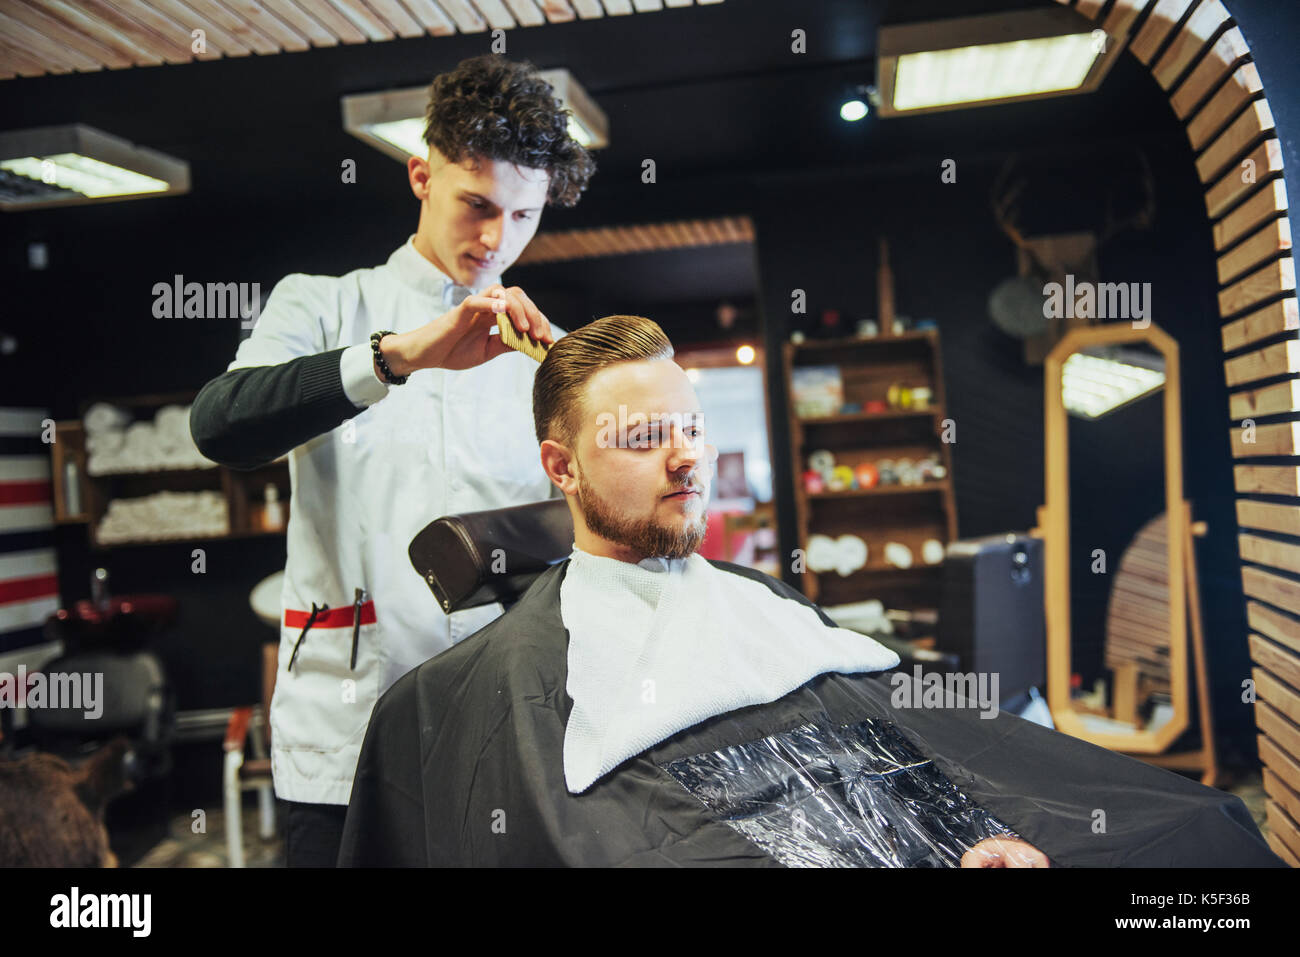 The Barber man in the process of cutting the beard of client electric clippers - Stock Image